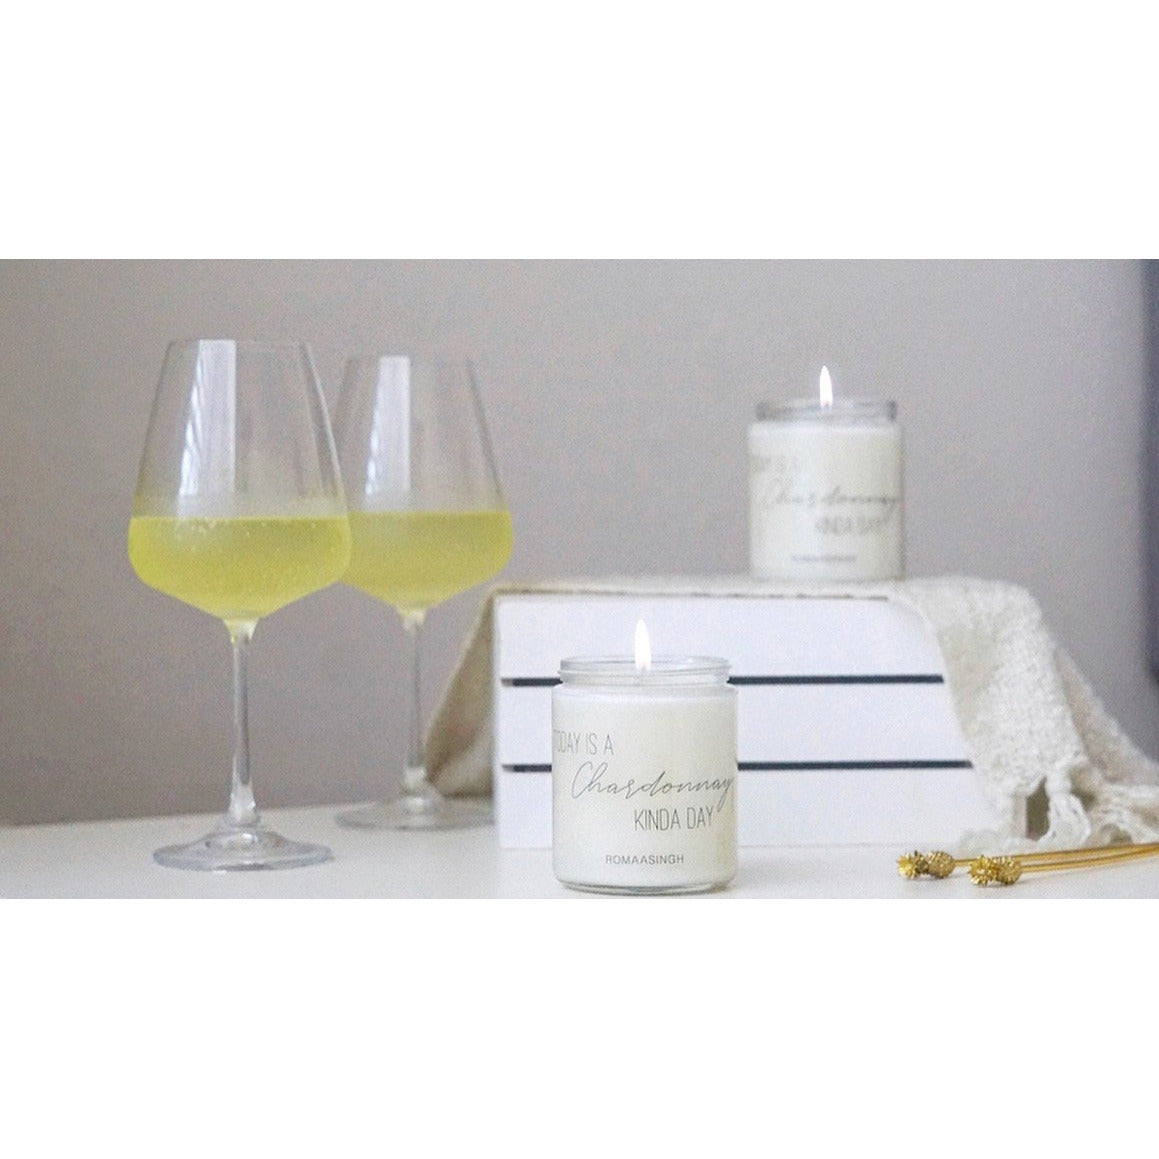 TODAY IS A CHARDONNAY KINDA DAY - AROMATHERAPY SCENTS